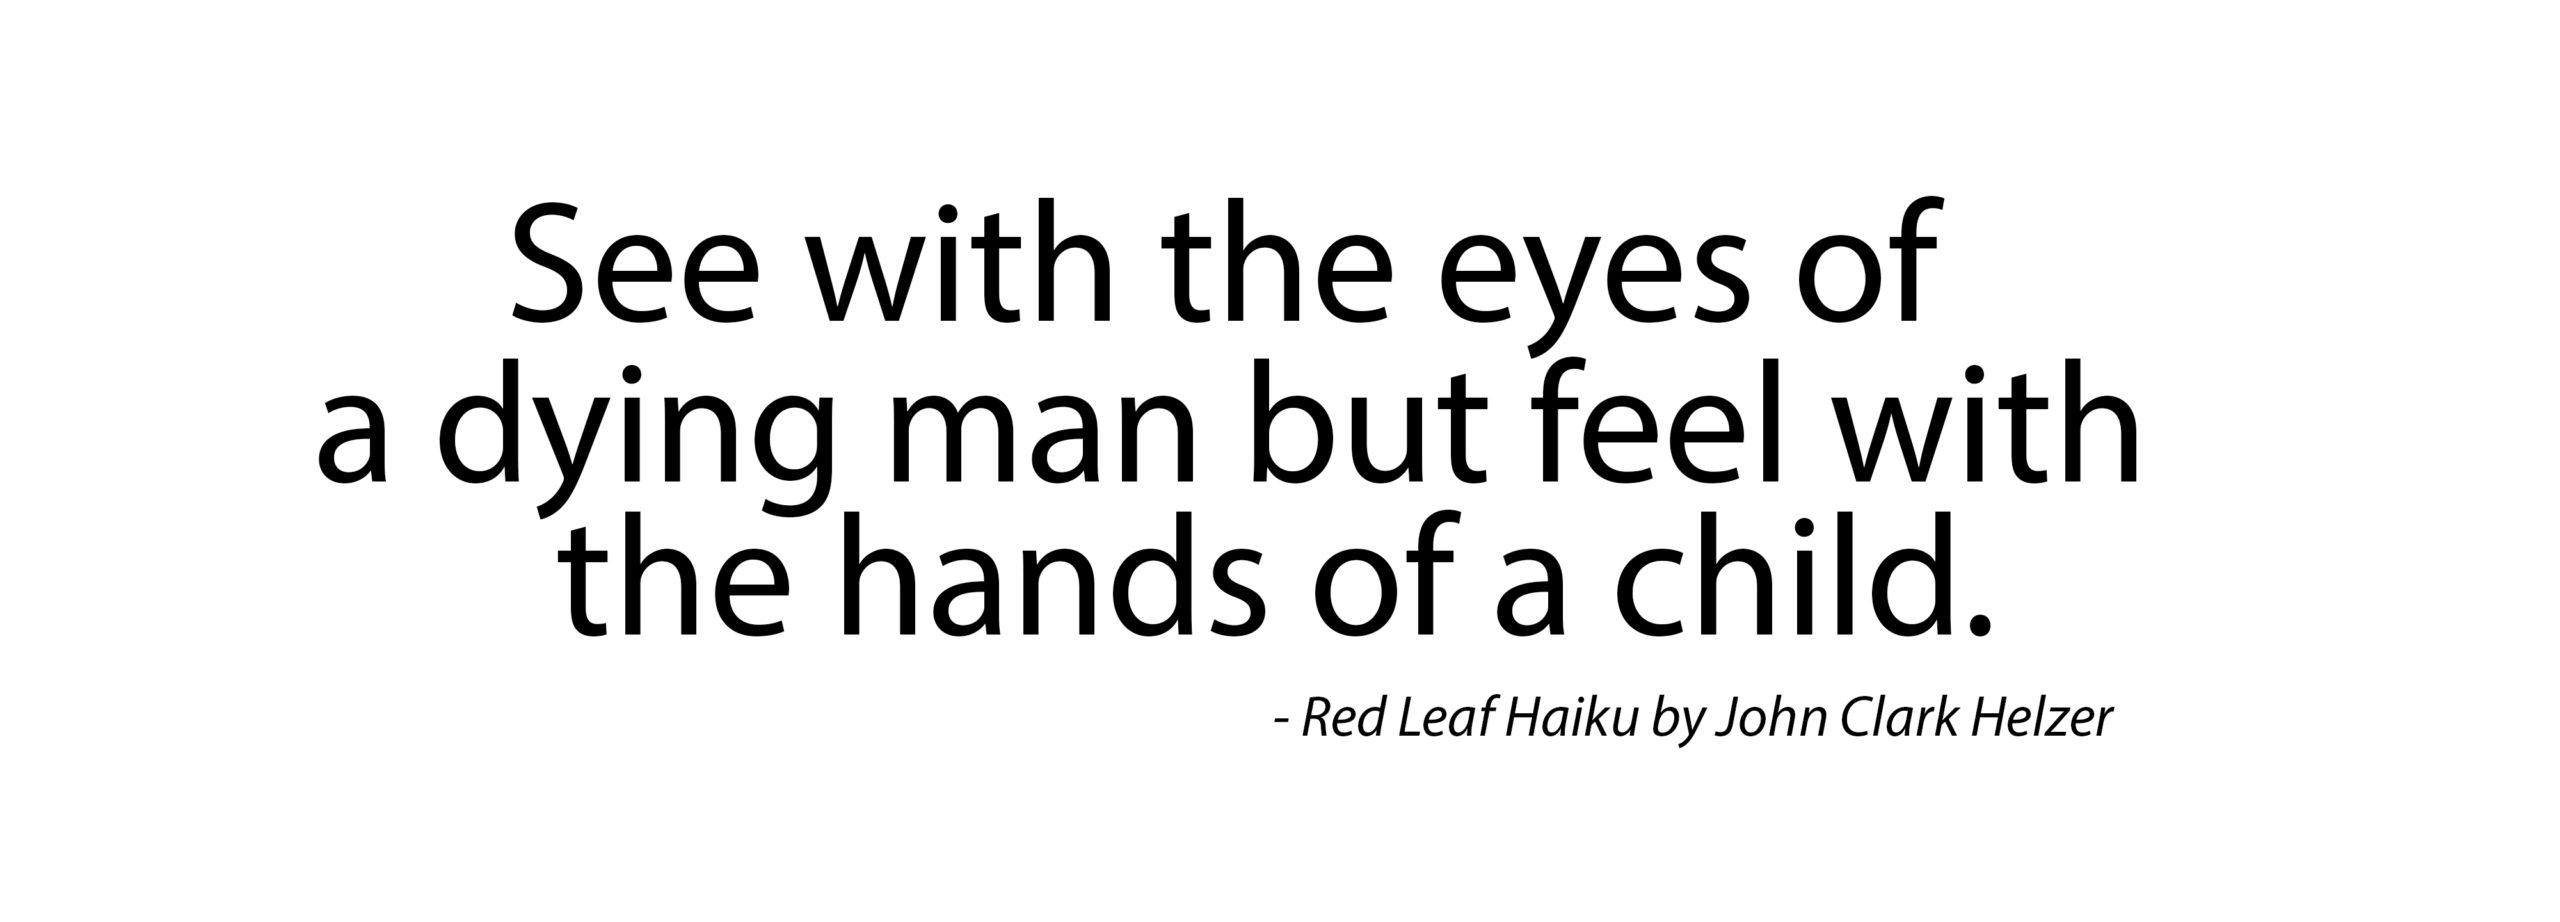 Haiku – Hands of a Child